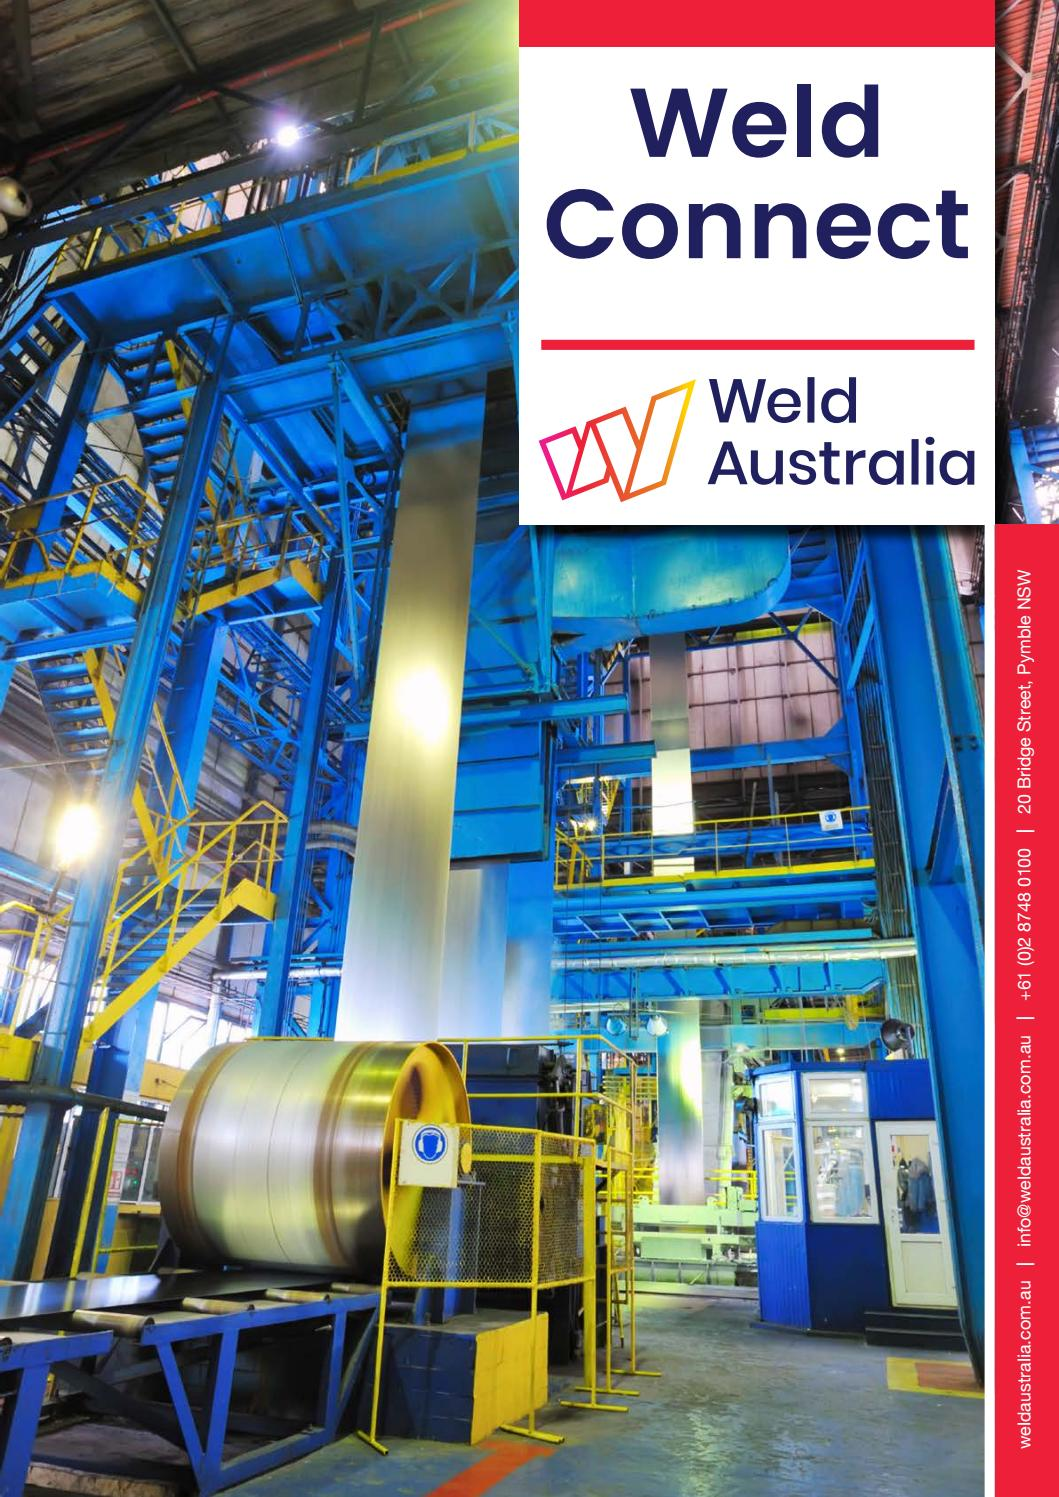 Weld Connect August 2018 by Weld Australia - issuu